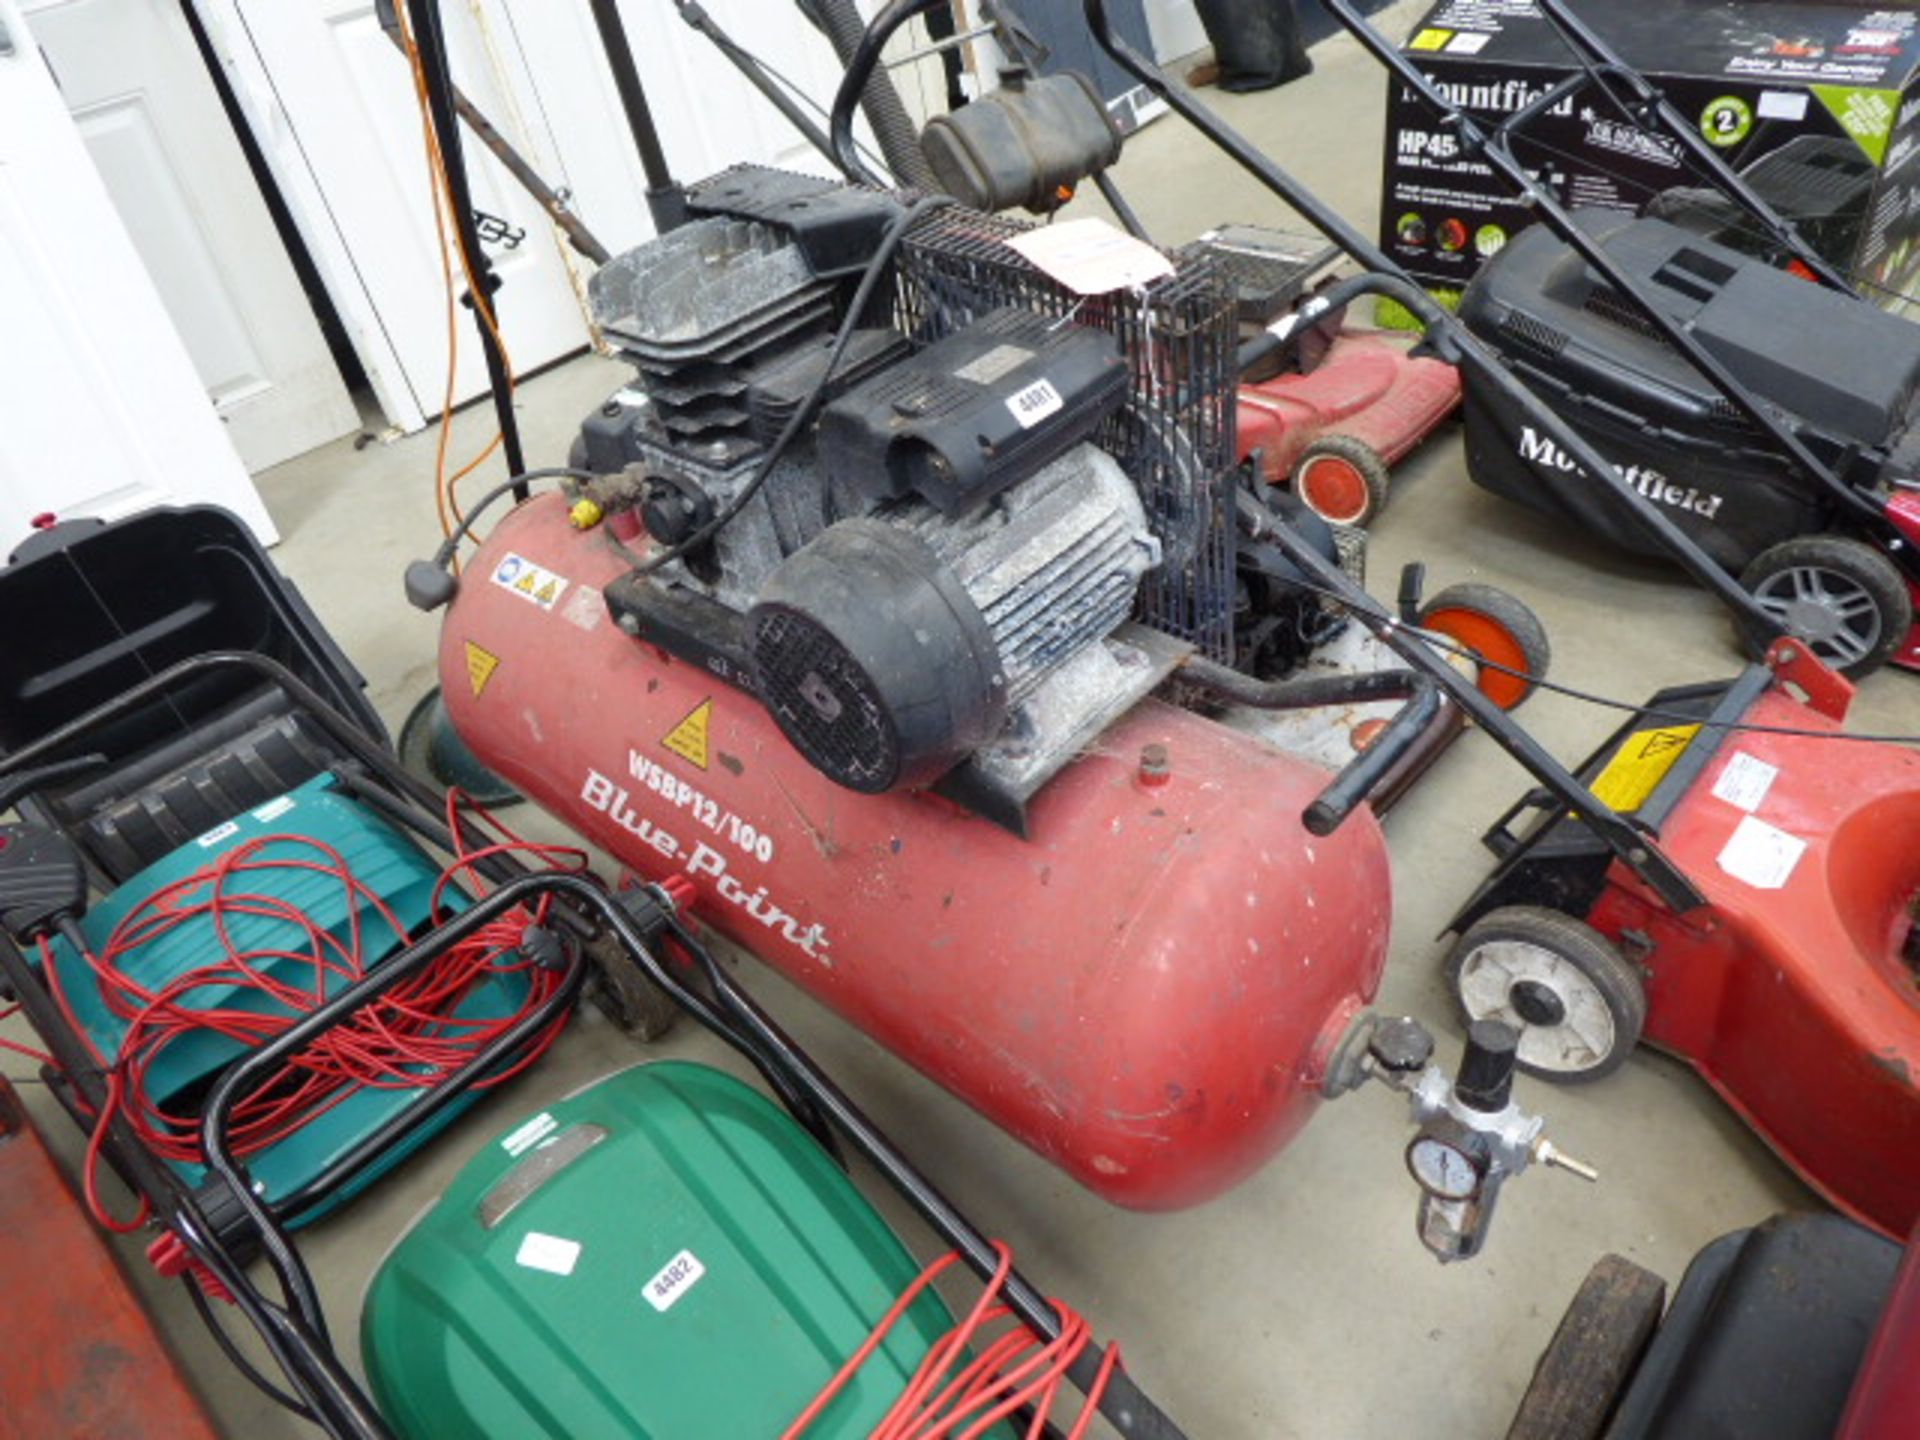 Lot 4481 - Blue point electric compressor